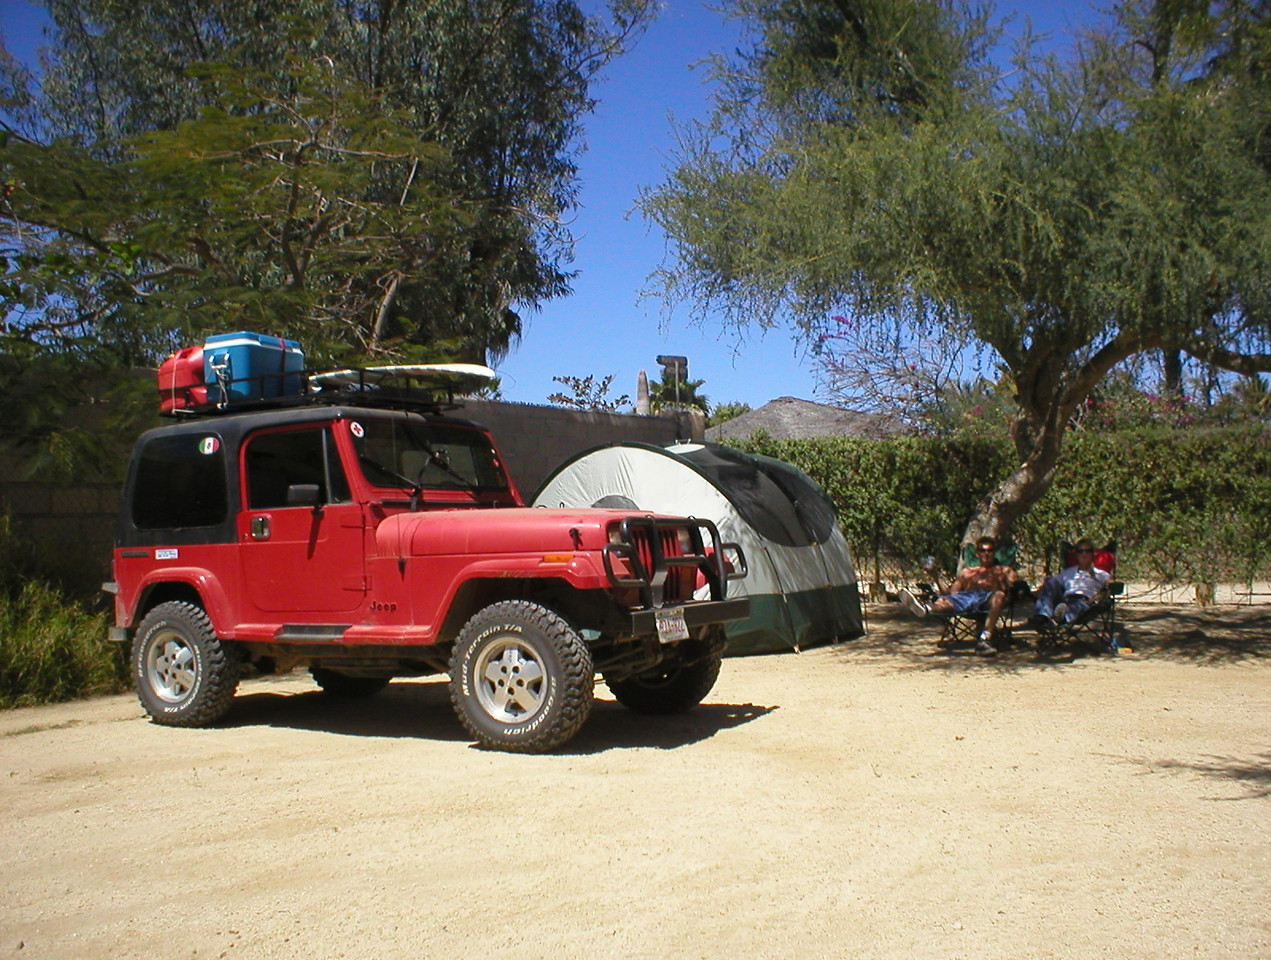 It was a short ride to Los Barriles. No budget hotels here so we planned to pitch the tent. This is the windsurf hot spot of the Baja. We planned to maybe stay two weeks here so I can get my wind fix. Wave surfing was cool but to me it was too much waiting around for a good wave only to ride it a short distance. Windsurfing in big winds is high intensity high speed fun for as long as your body can hold on, more my style. At Los Barriles we had the camp spot practically to our selves.